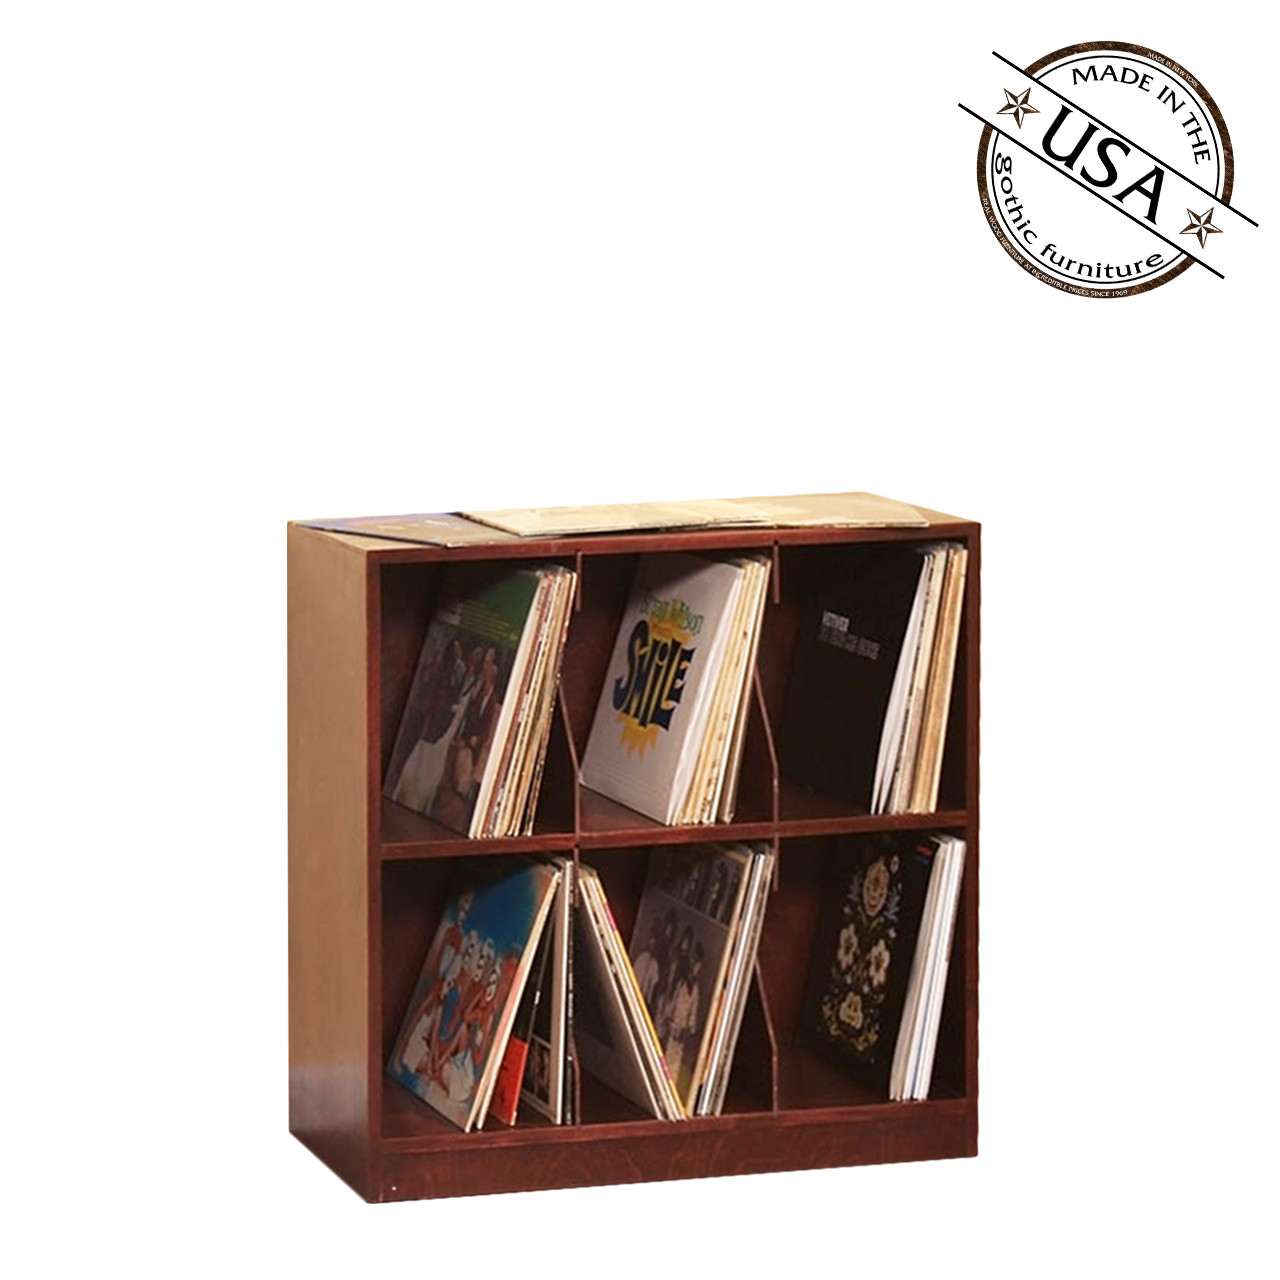 LP Record Rack, 2 shelf with Base - CD Racks, DVD Racks And Stands, Media Storage Units, LP's, Records